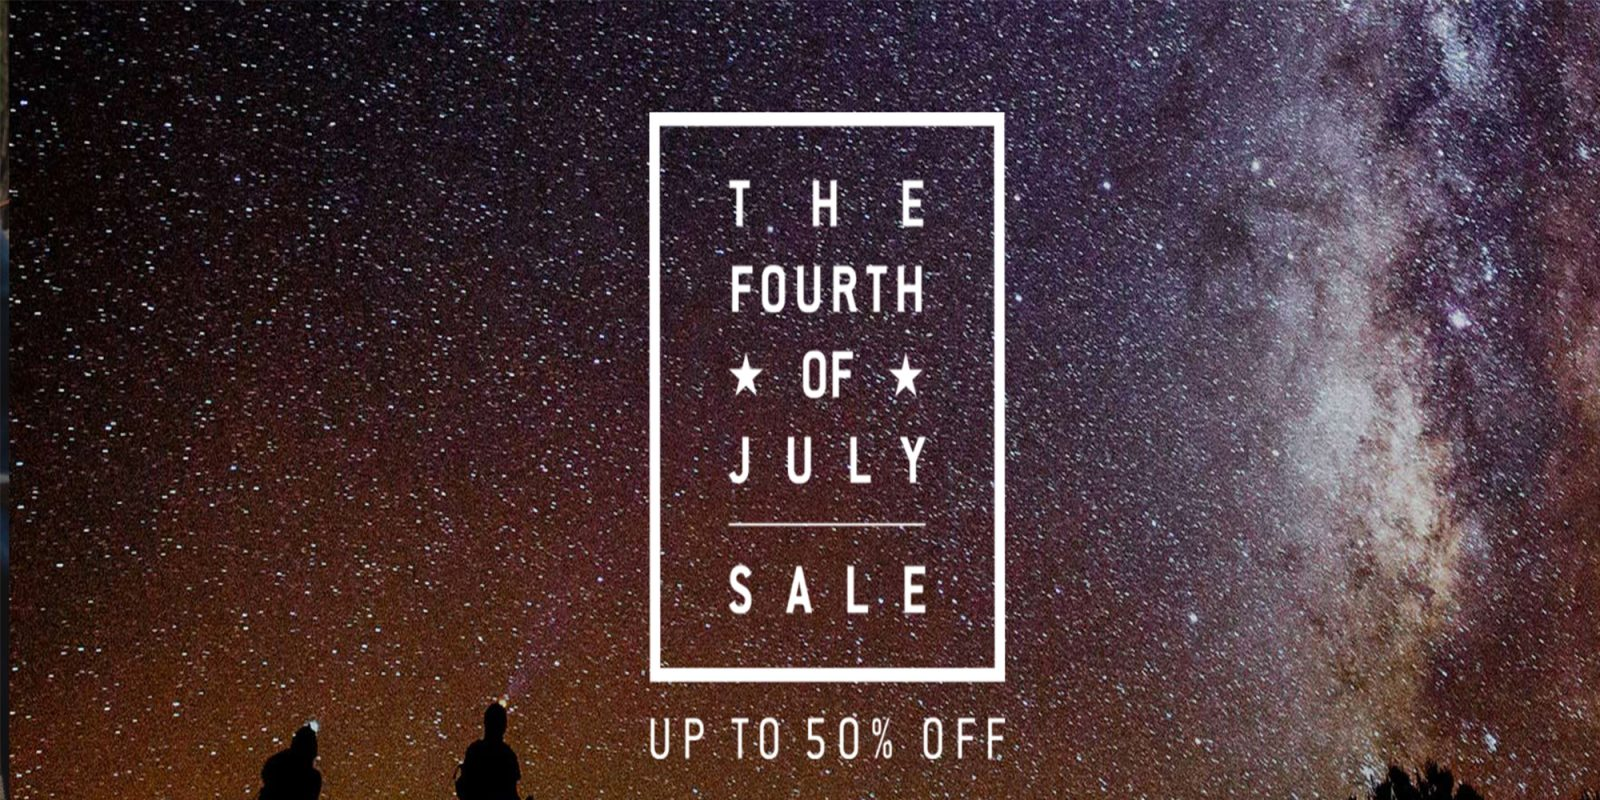 Backcountry's Fourth of July Sale is live with up to 50% off The North Face, Marmot, more